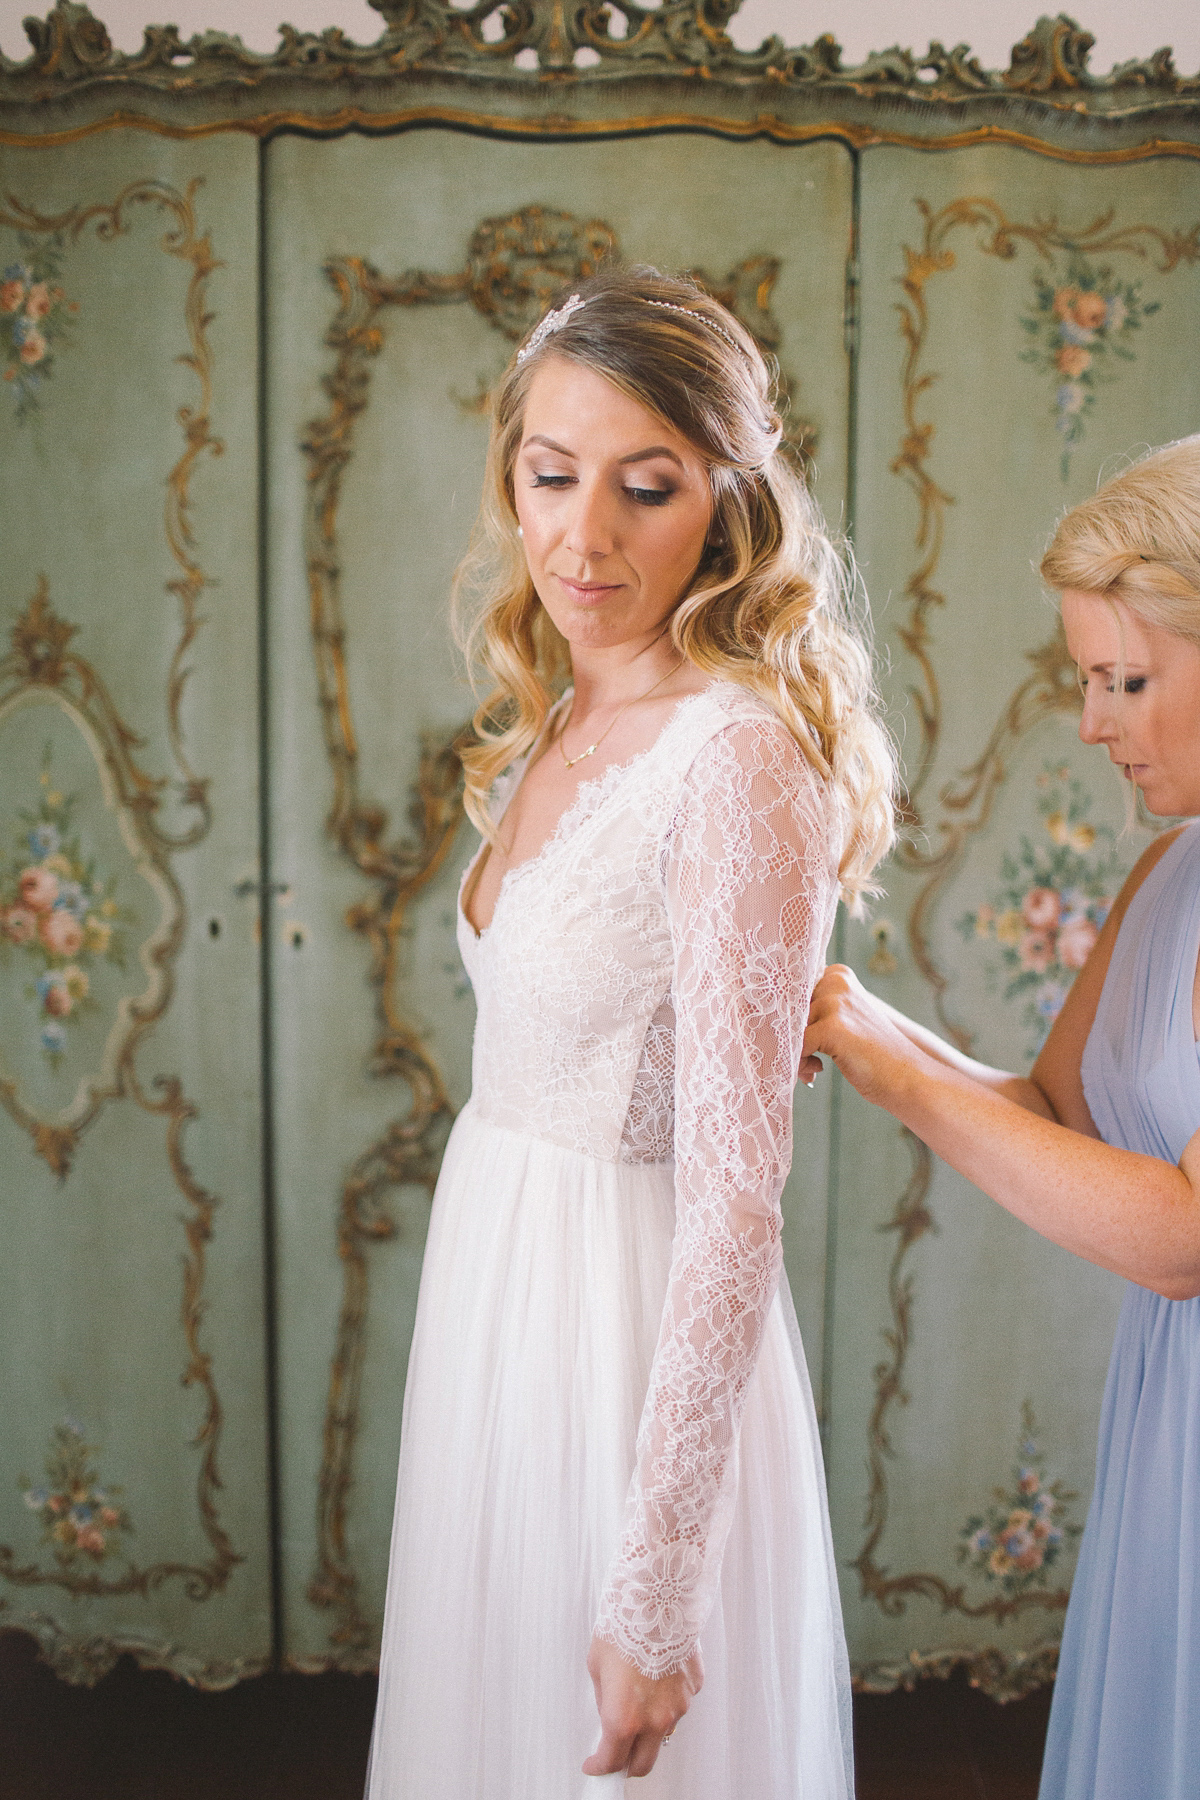 d801b1188dd9 ... fine art elegant boho romantic italy wedding - A Long Sleeved Lace  Dress for a Relaxed ...